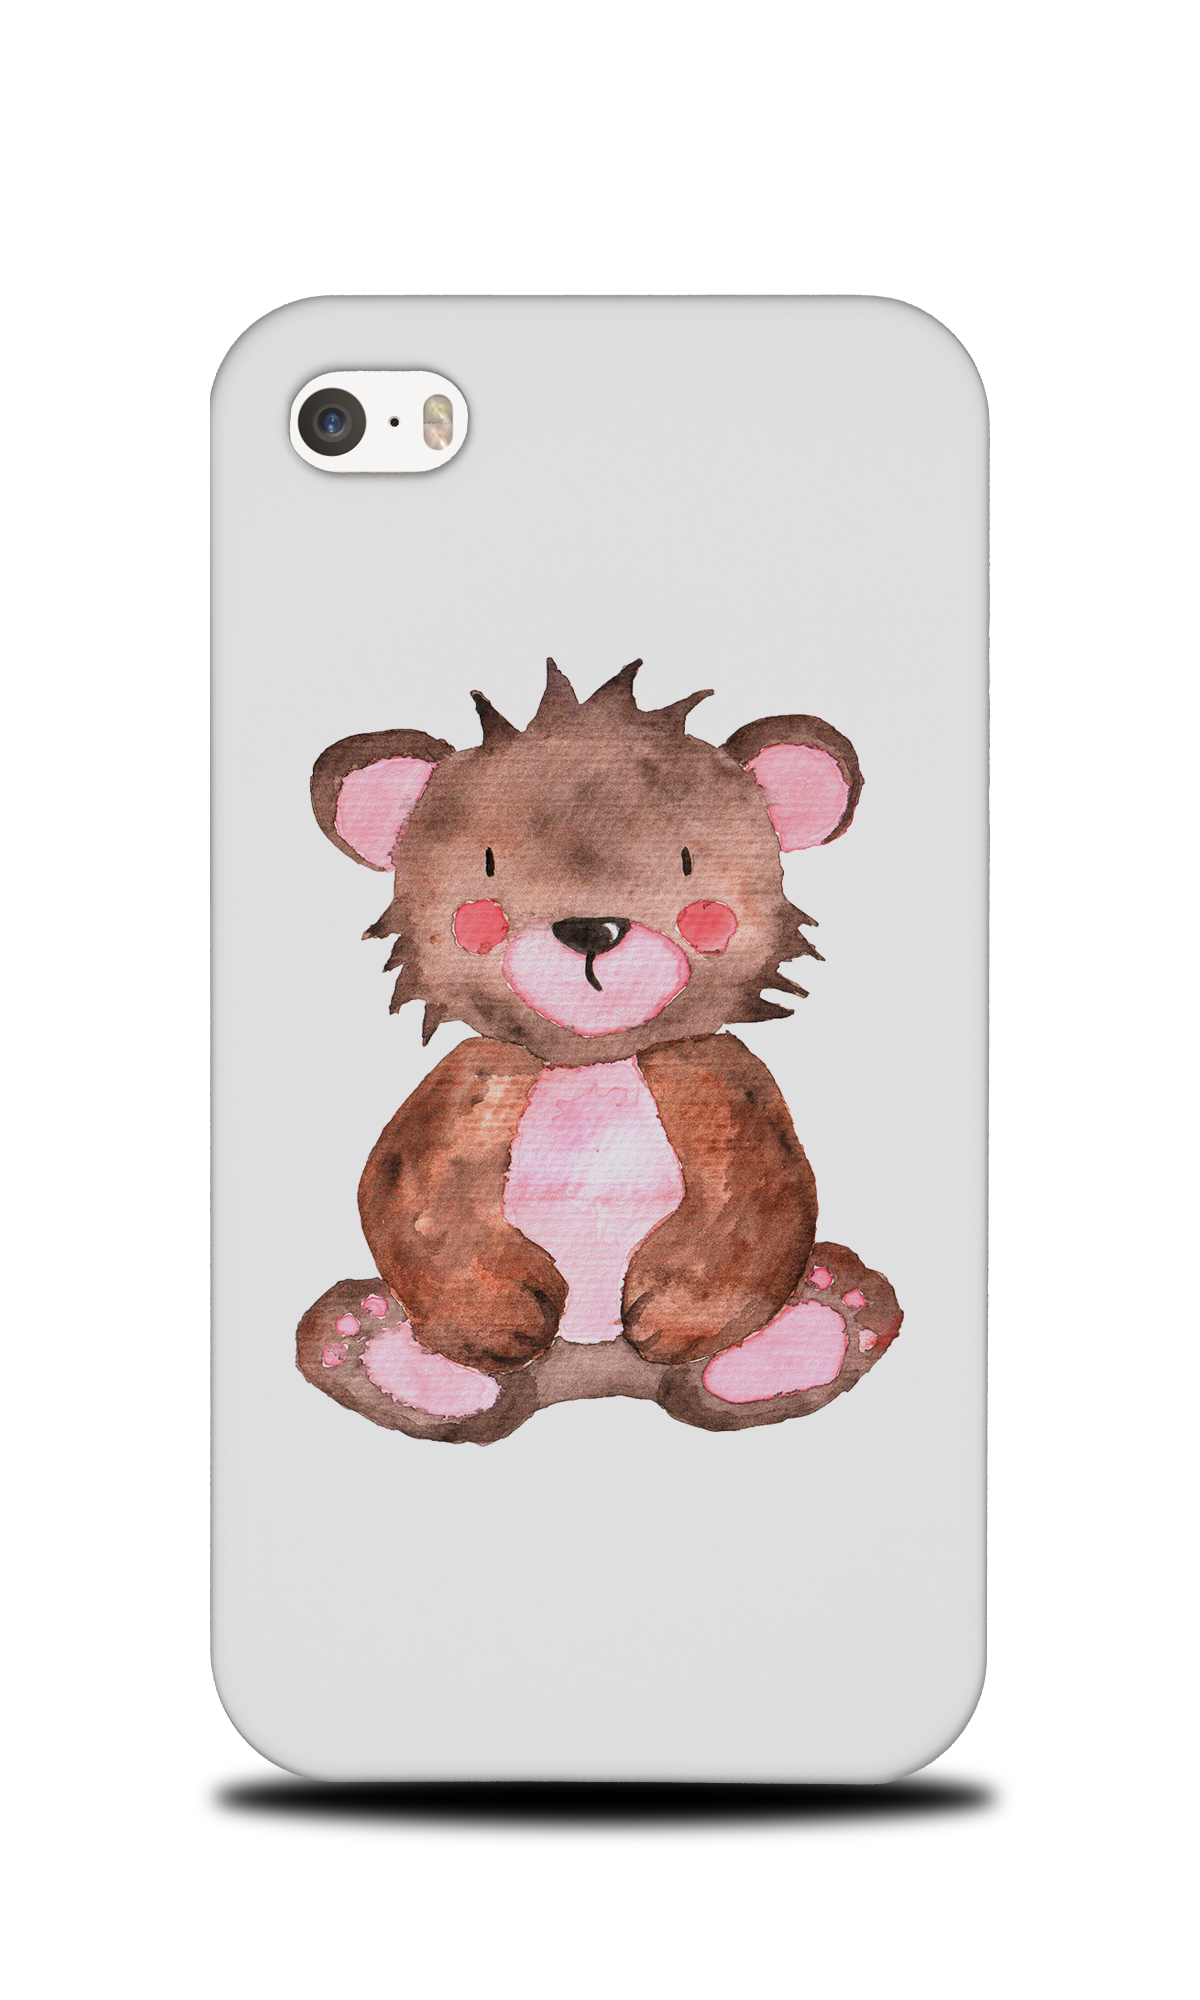 1200x2000 Watercolor Teddy Bear Hard Phone Case Cover For Apple Iphone Ebay